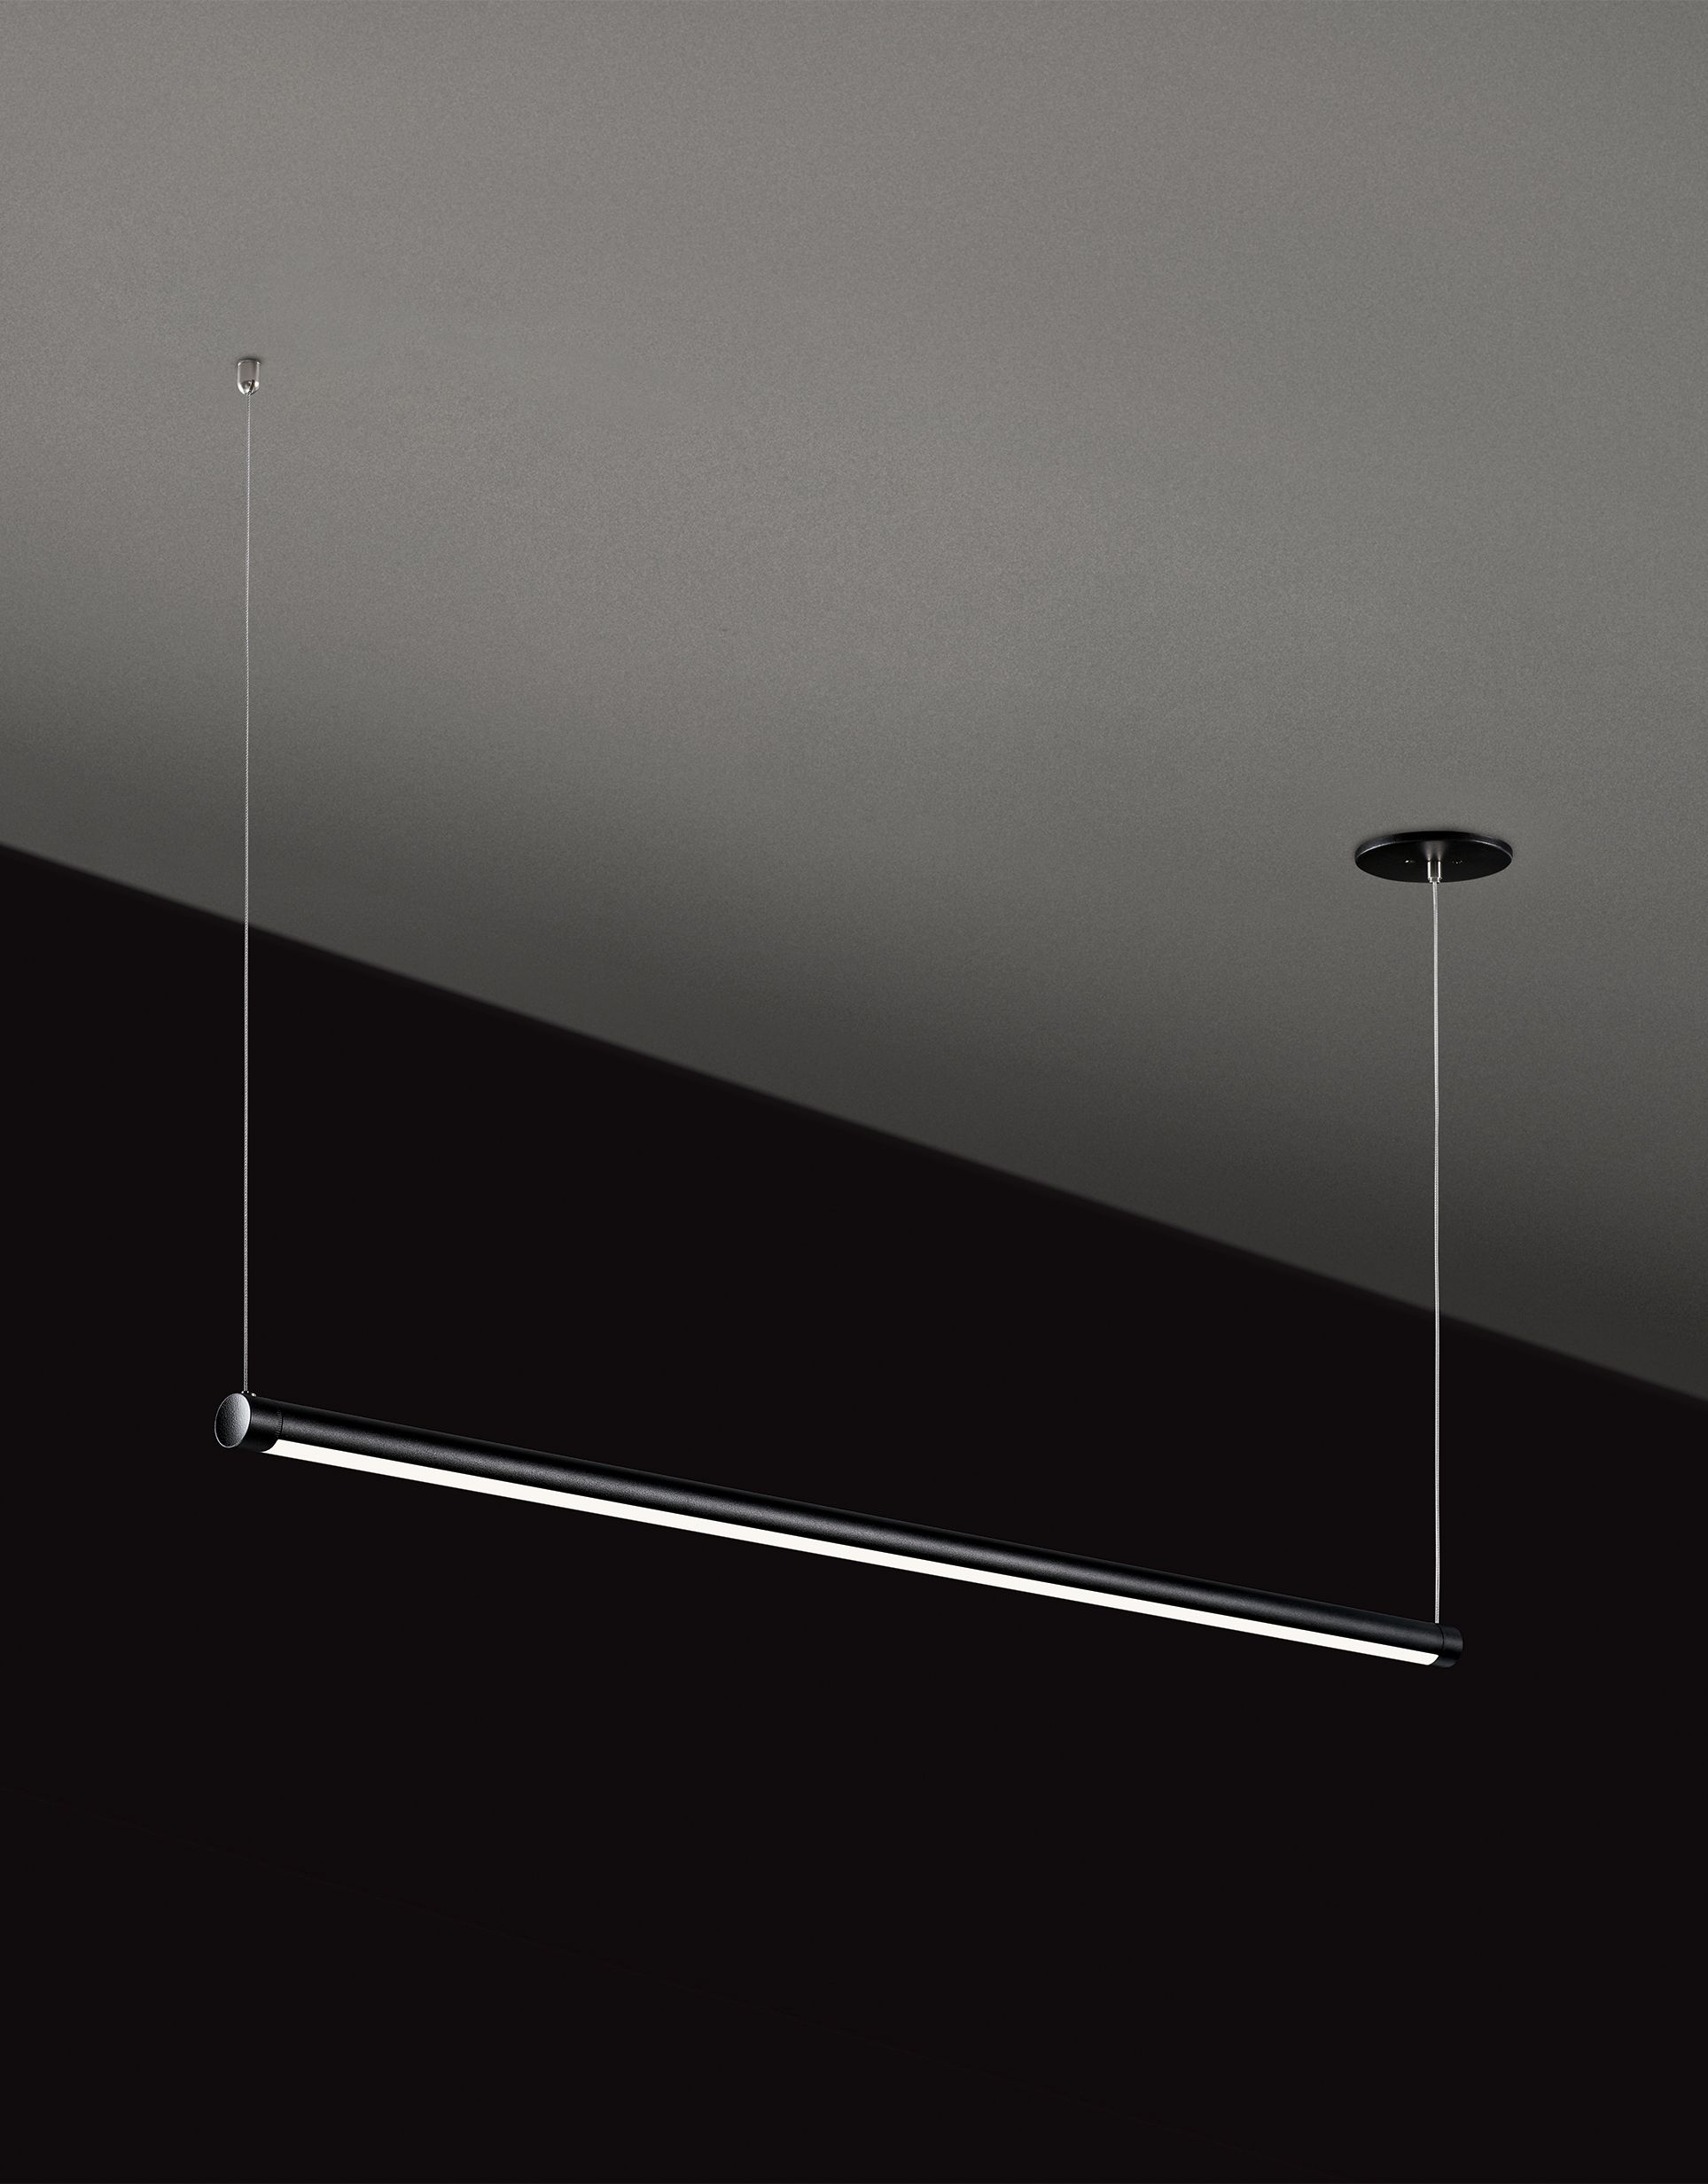 Dash Pendant - OCL Architectural Lighting | Lighting ...